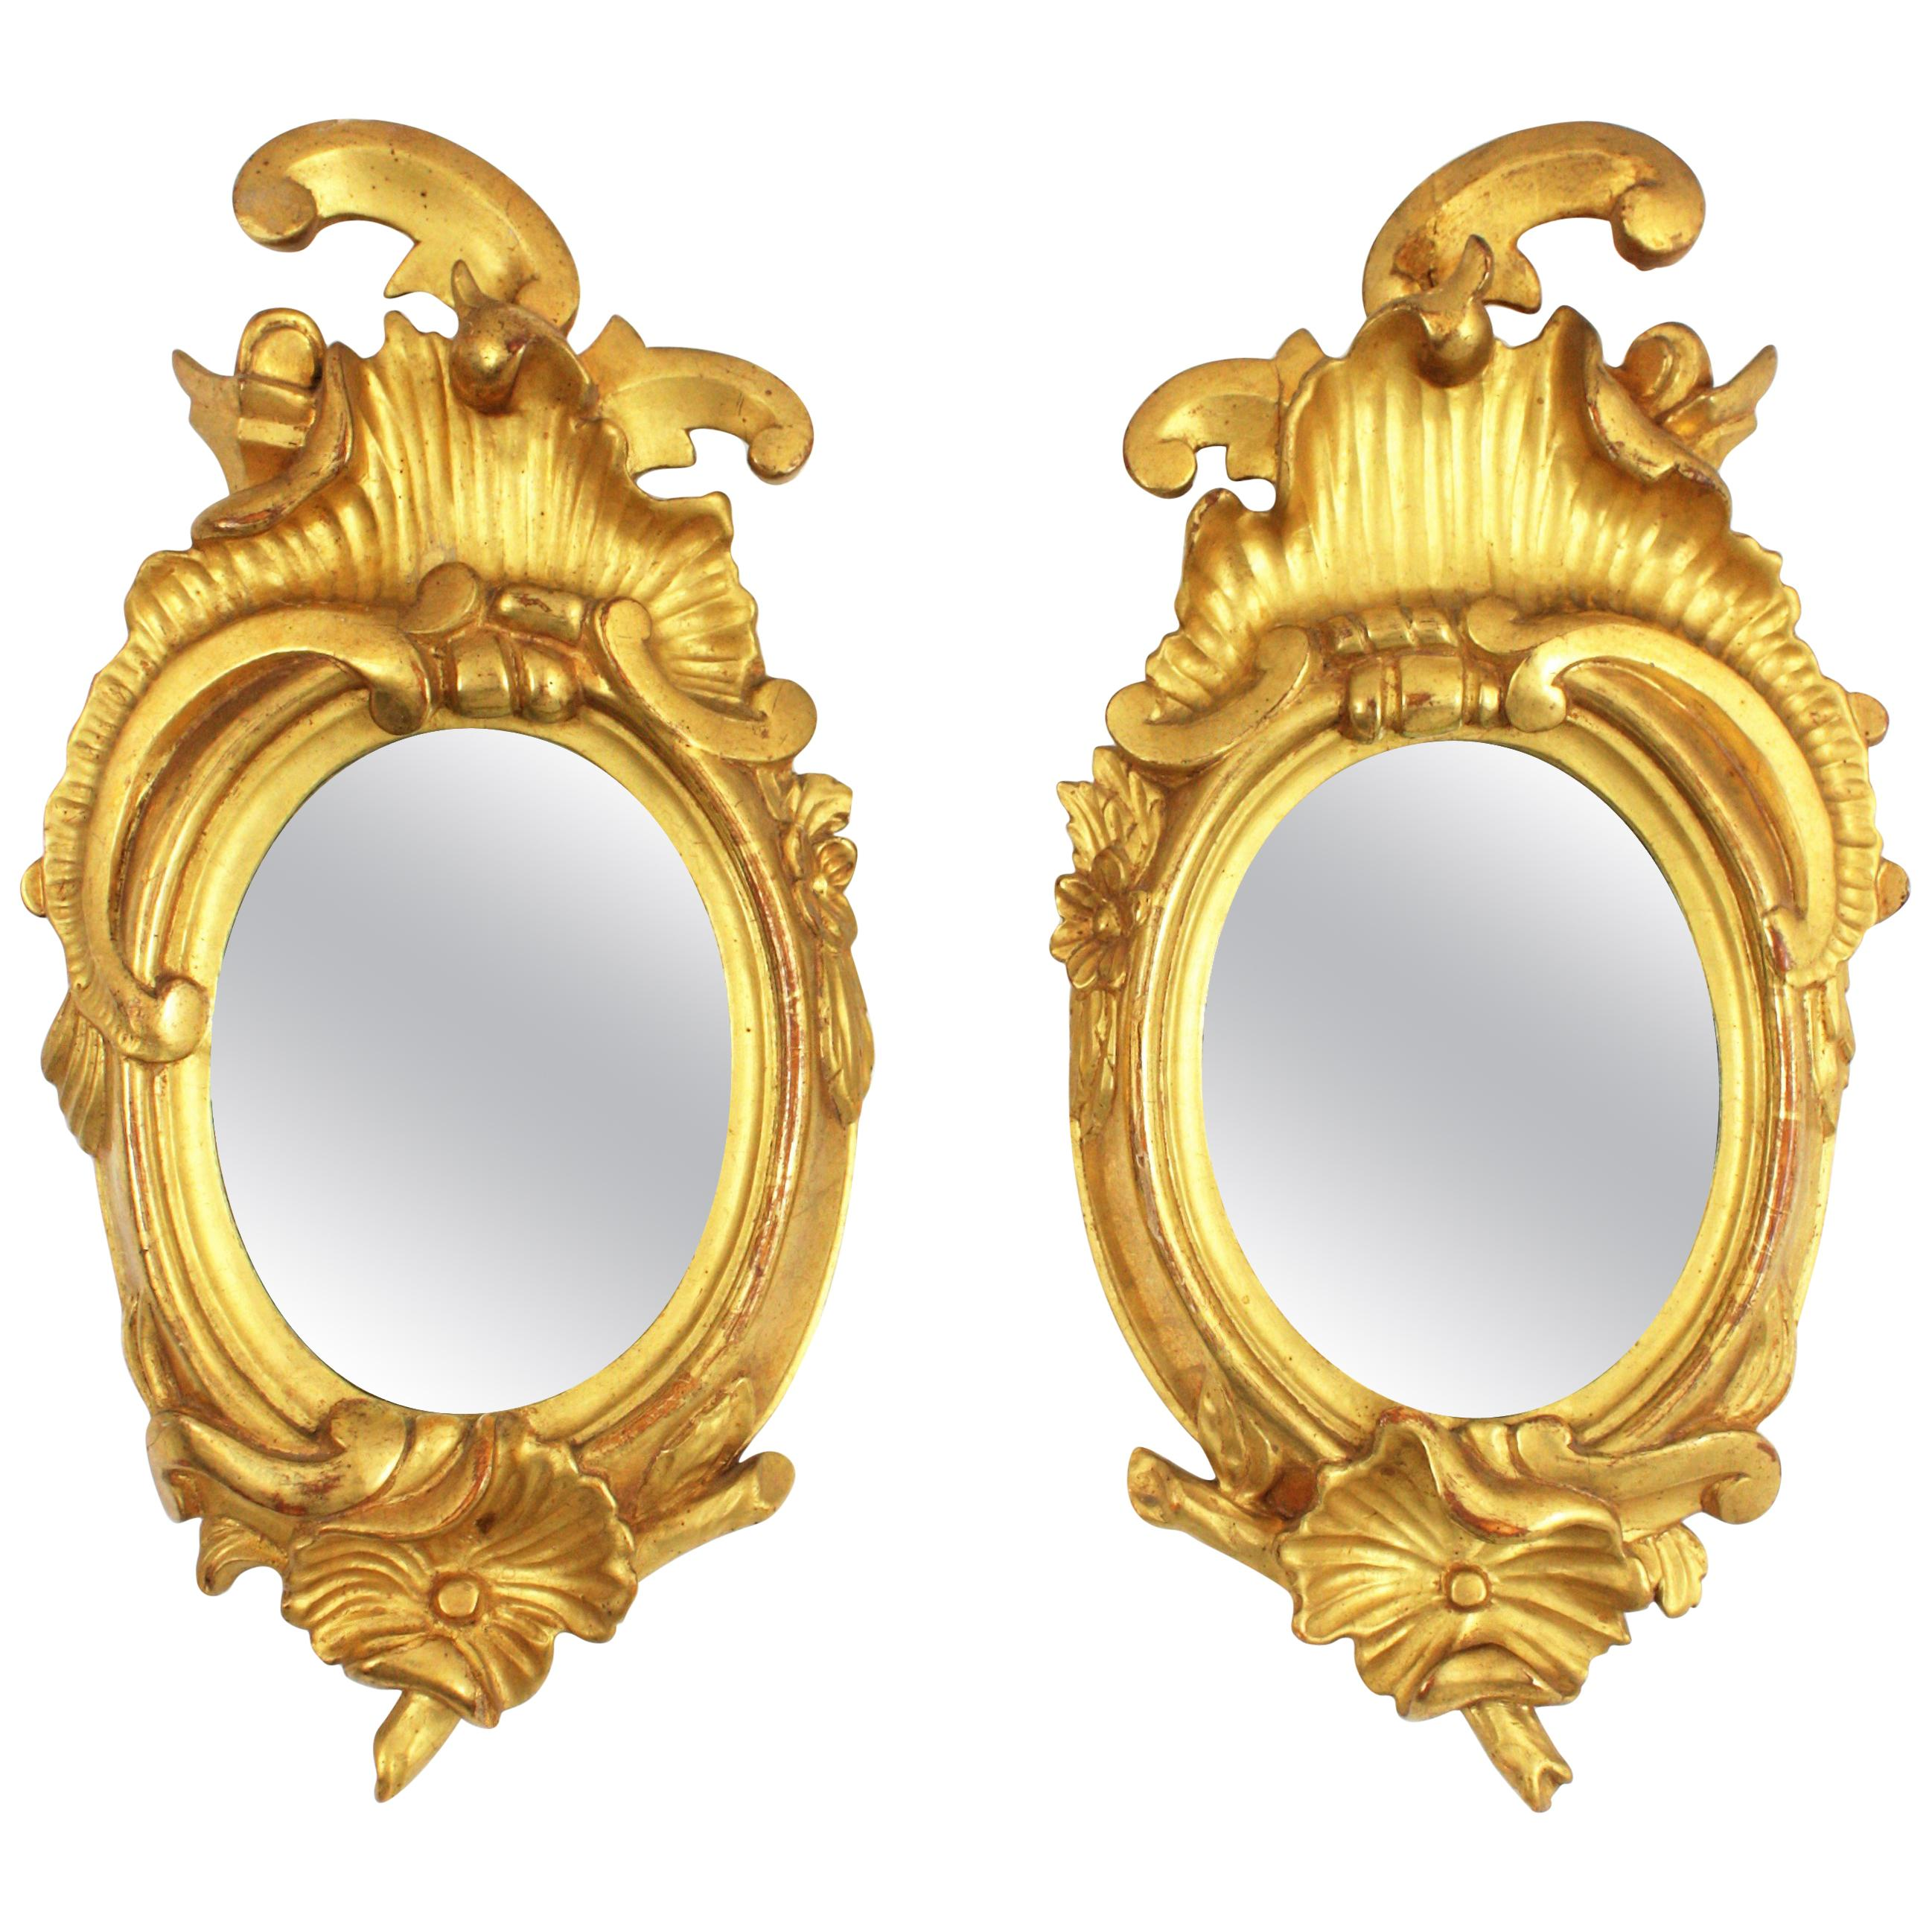 Pair of Art Nouveau Left and Right Gold Leaf Giltwood Mini Sized Mirrors